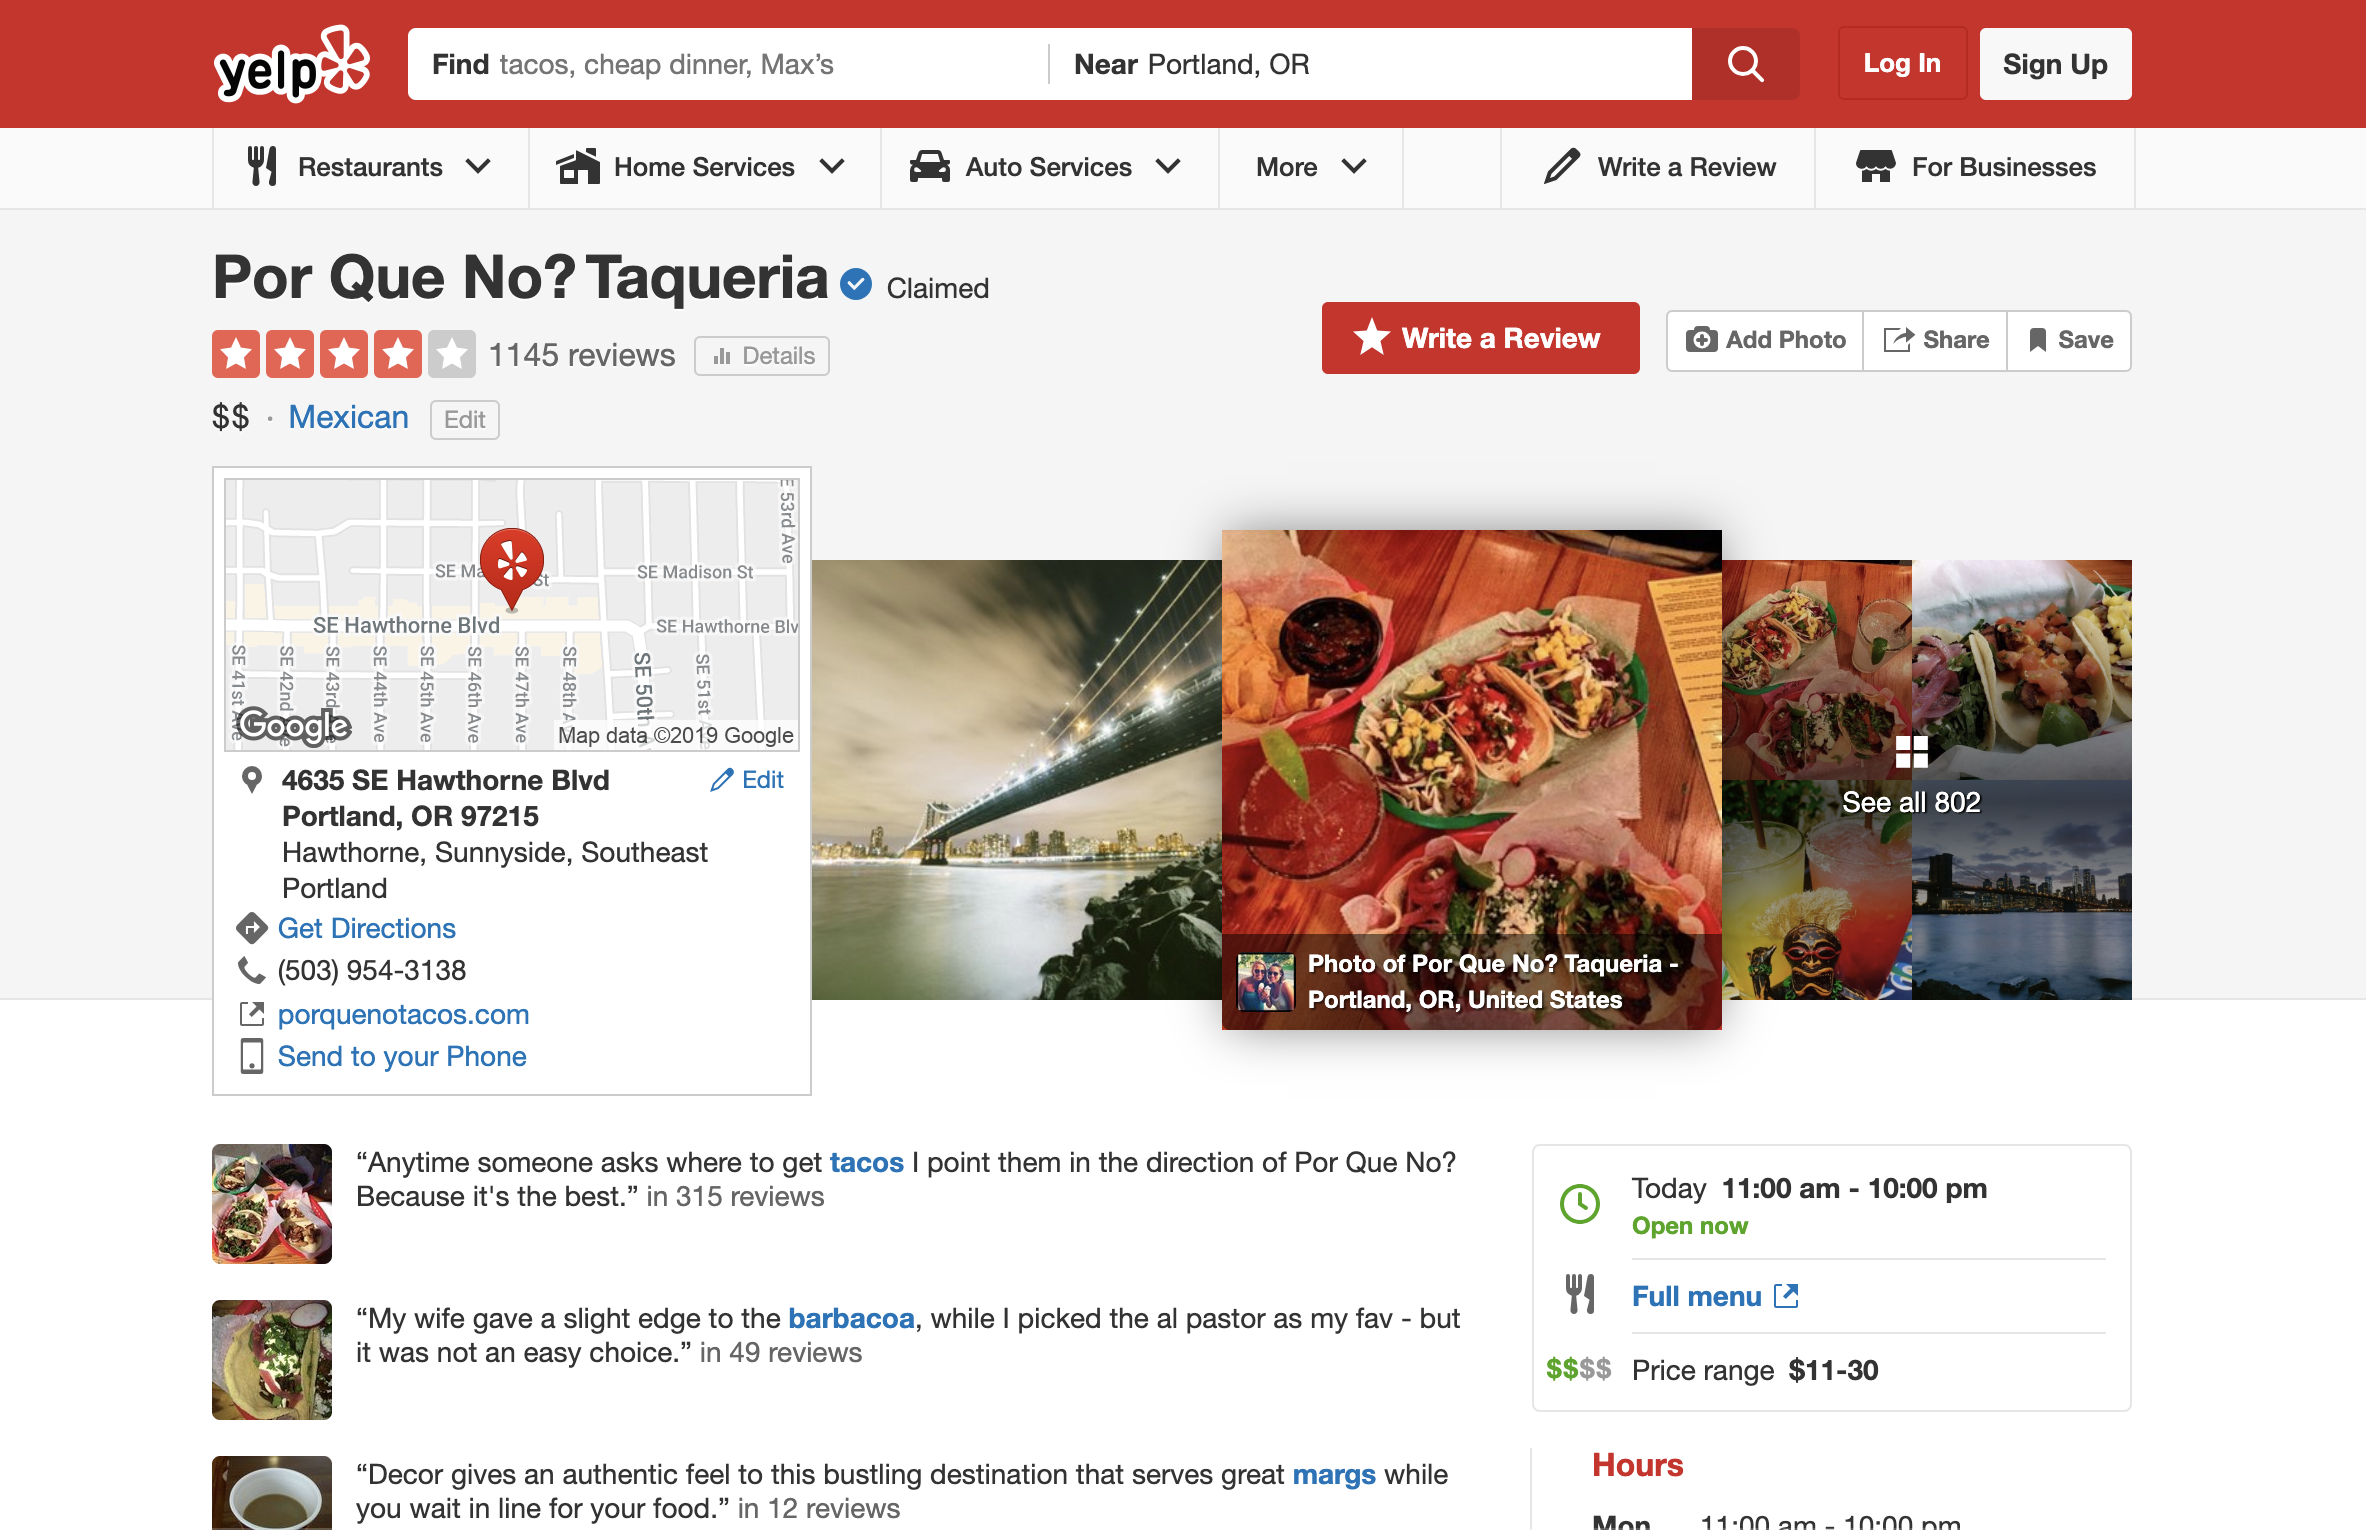 Yelp page for Por Que No?, a taqueria, with highlights of customer reviews.